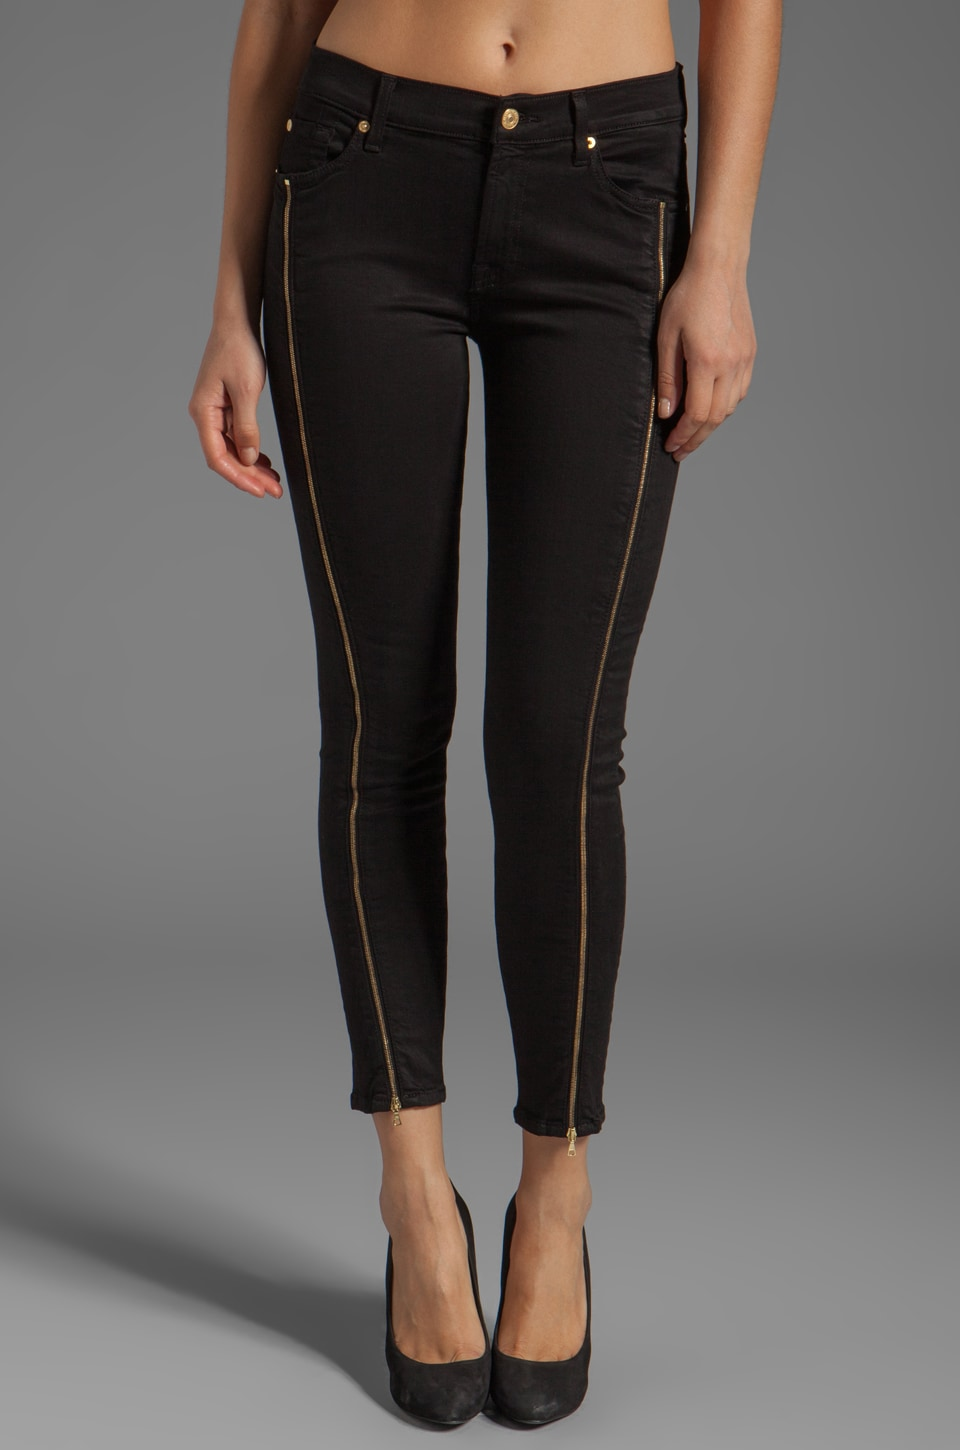 7 For All Mankind The Cropped Skinny with Side Zips in Black